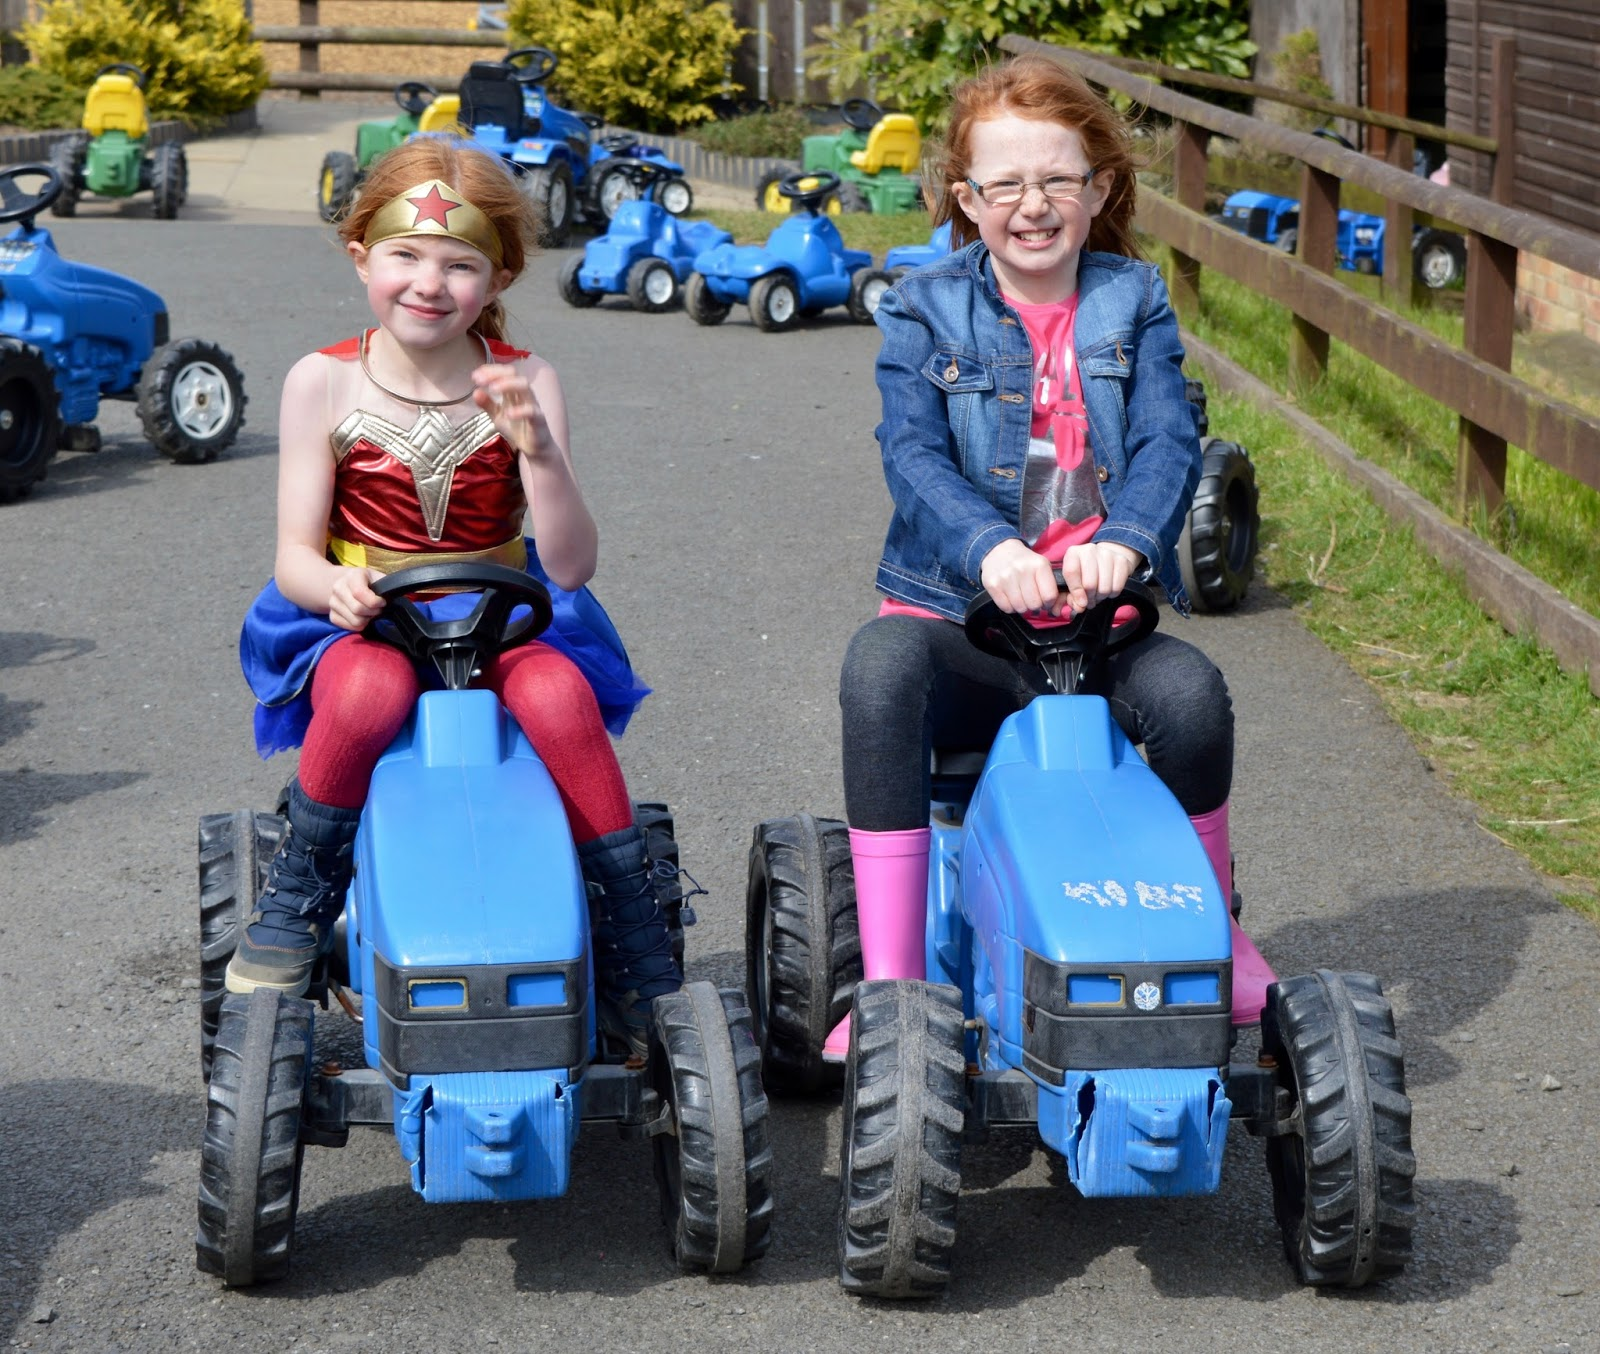 Birthday Parties at Whitehouse Farm in Northumberland | What to expect & review - tractors